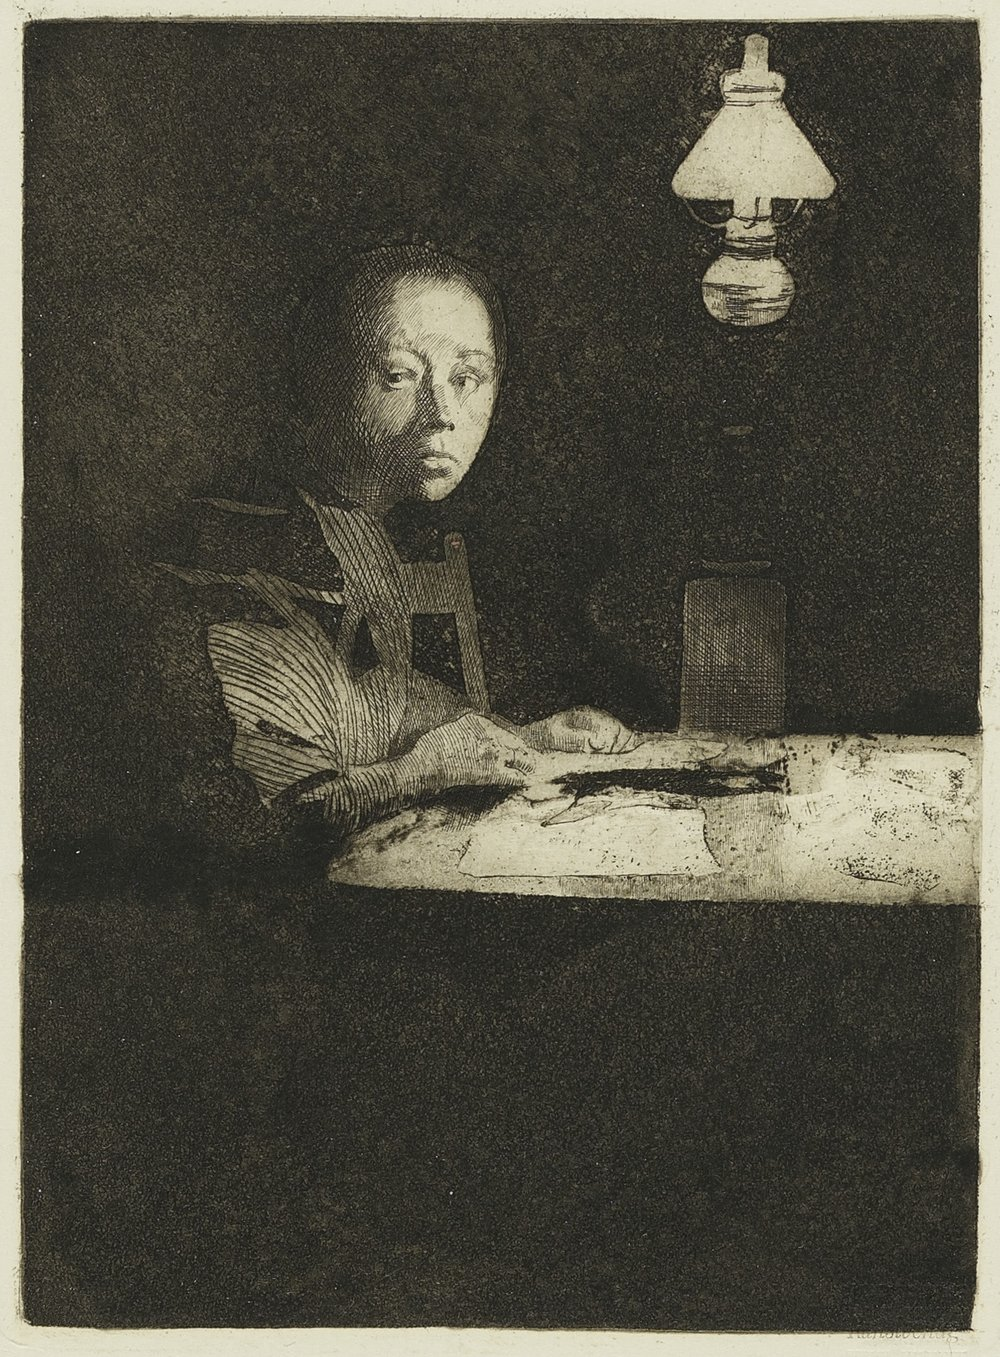 Selbstbildnis am Tisch (Self-Portrait at Table), about 1893; published about 1931